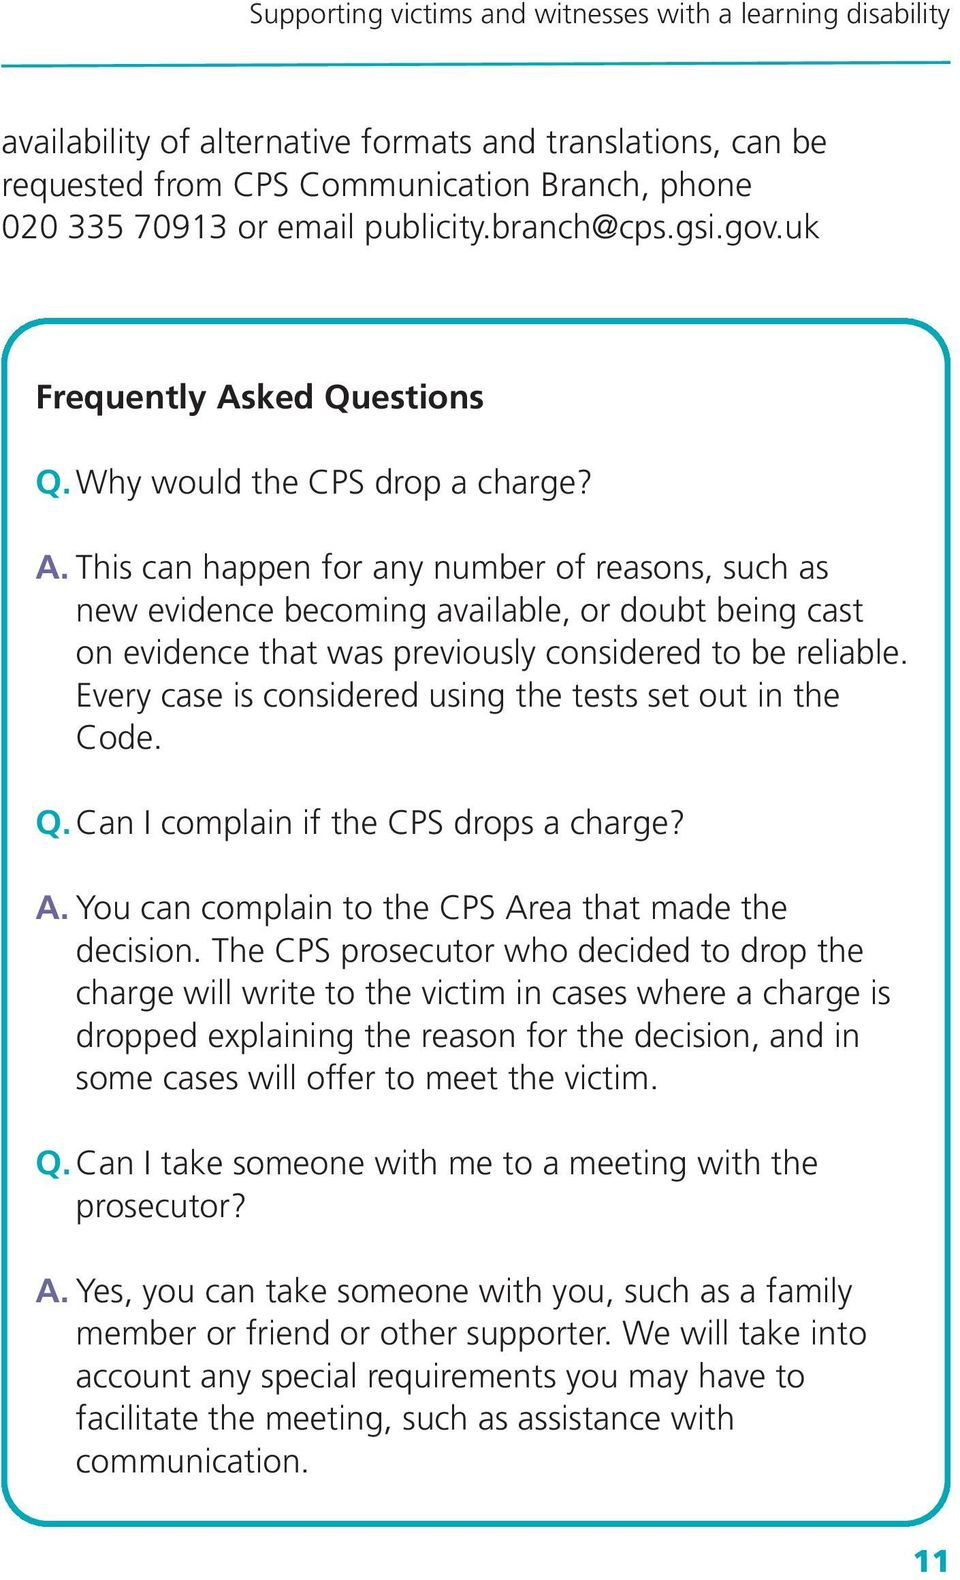 Every case is considered using the tests set out in the Code. Q. Can I complain if the CPS drops a charge? A. You can complain to the CPS Area that made the decision.